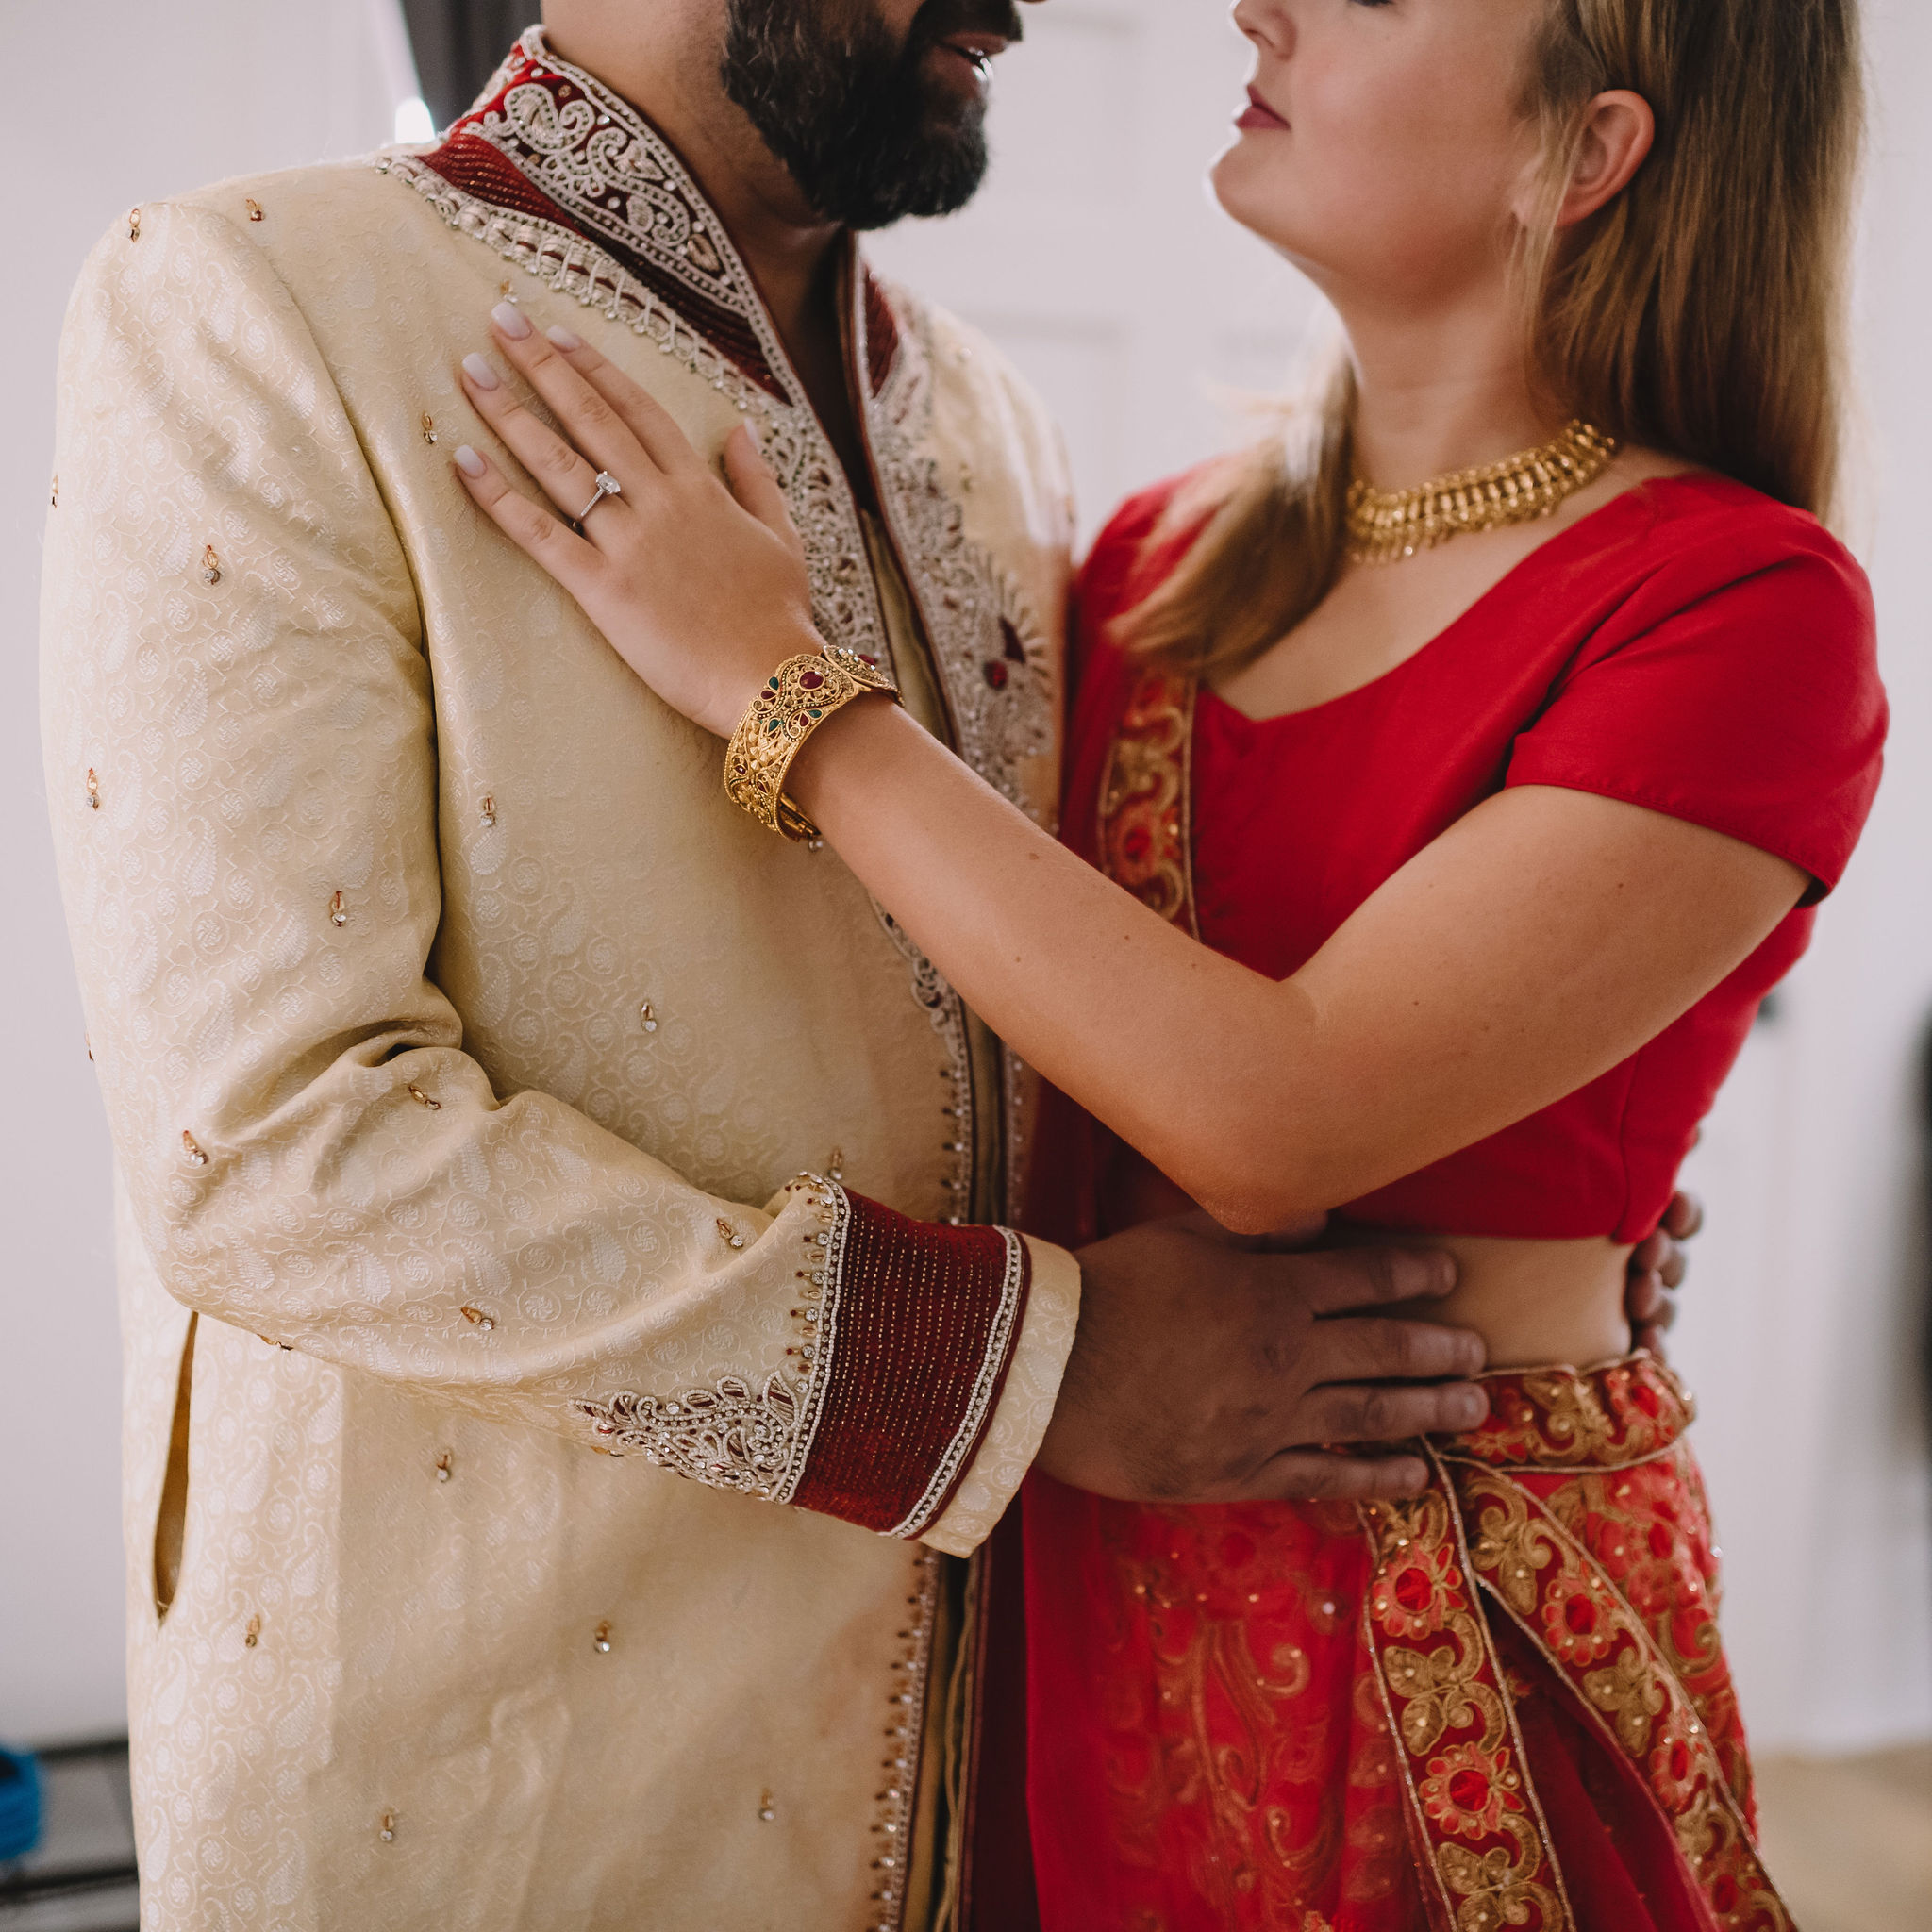 Rachel and Jimmy's wedding weekend included a Mehndi Party. For this event, Rachel wore a traditional Lehenga in red and gold and Jimmy wore a Sherwani with red embroidered detail.